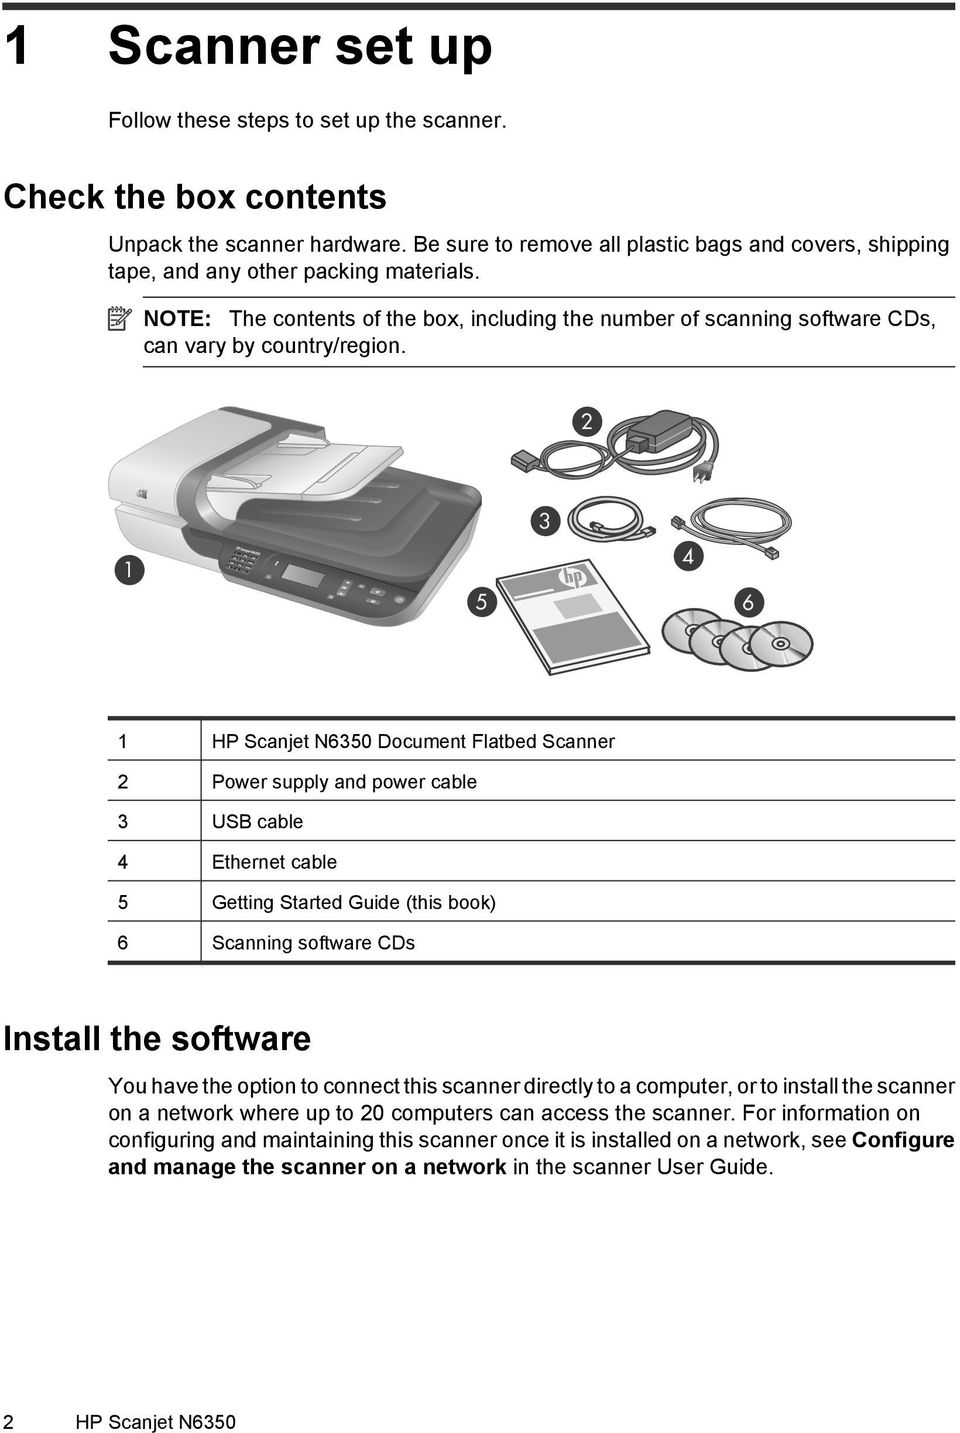 2 1 5 3 4 6 1 HP Scanjet N6350 Document Flatbed Scanner 2 Power supply and power cable 3 USB cable 4 Ethernet cable 5 Getting Started Guide (this book) 6 Scanning software CDs Install the software